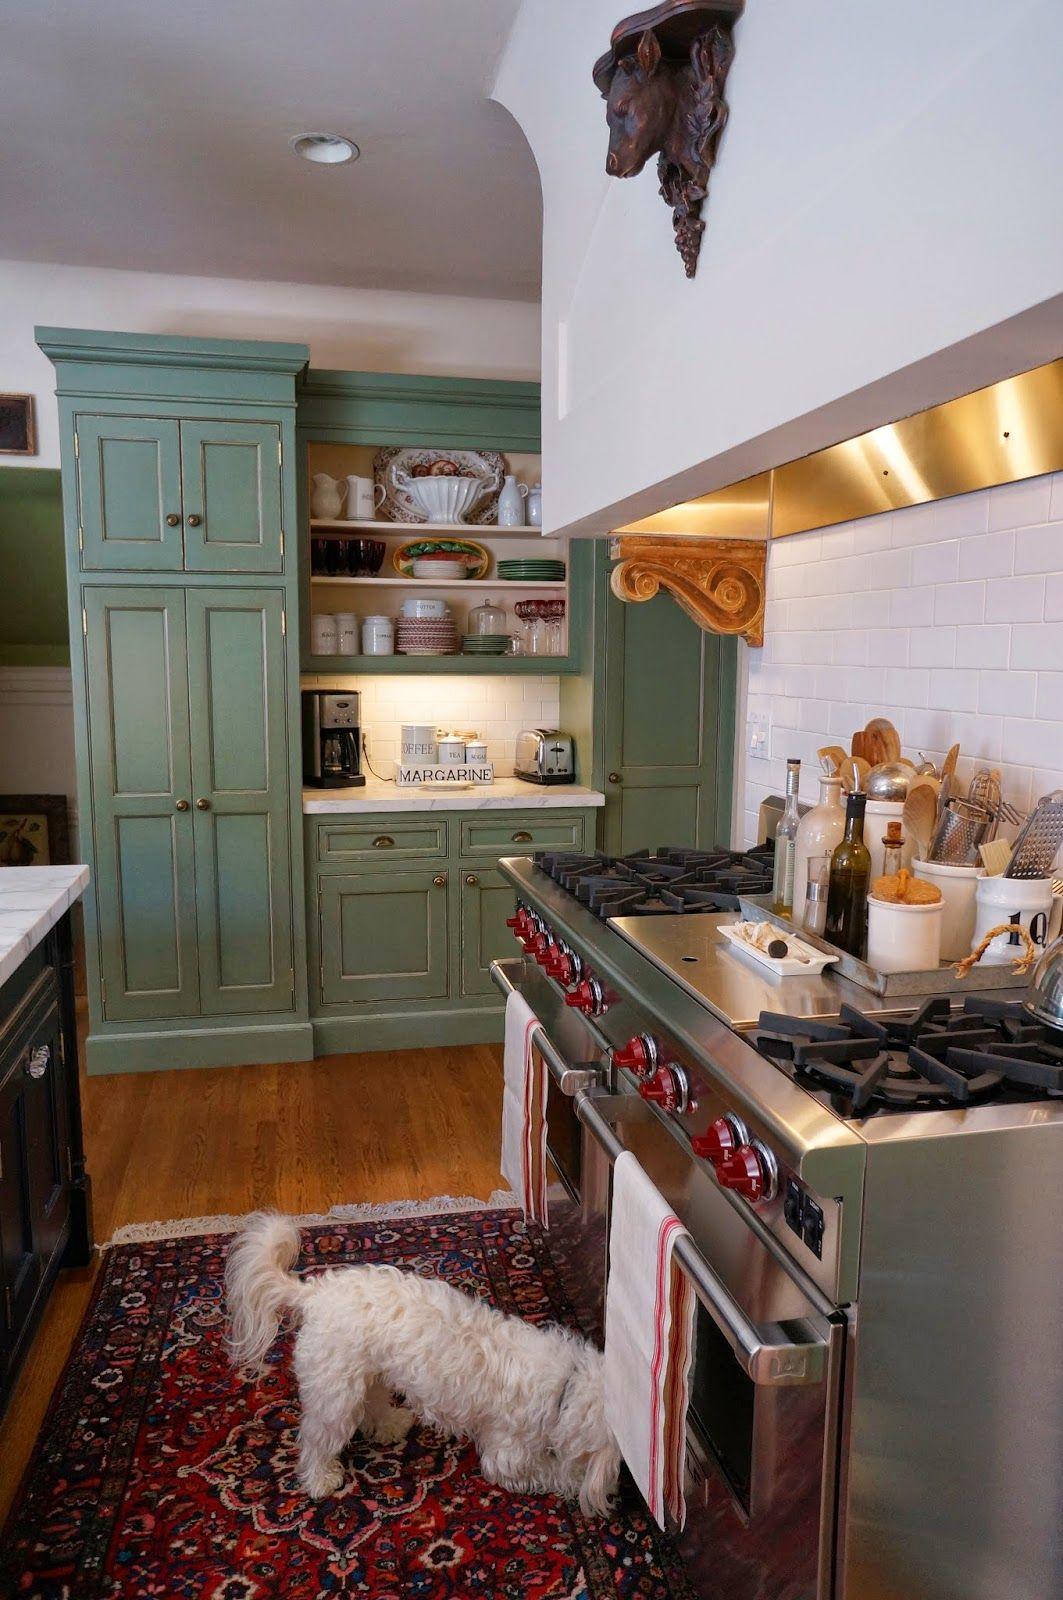 vignette design: From Mustard To Mayo | Kitchens and Breakfast Rooms ...